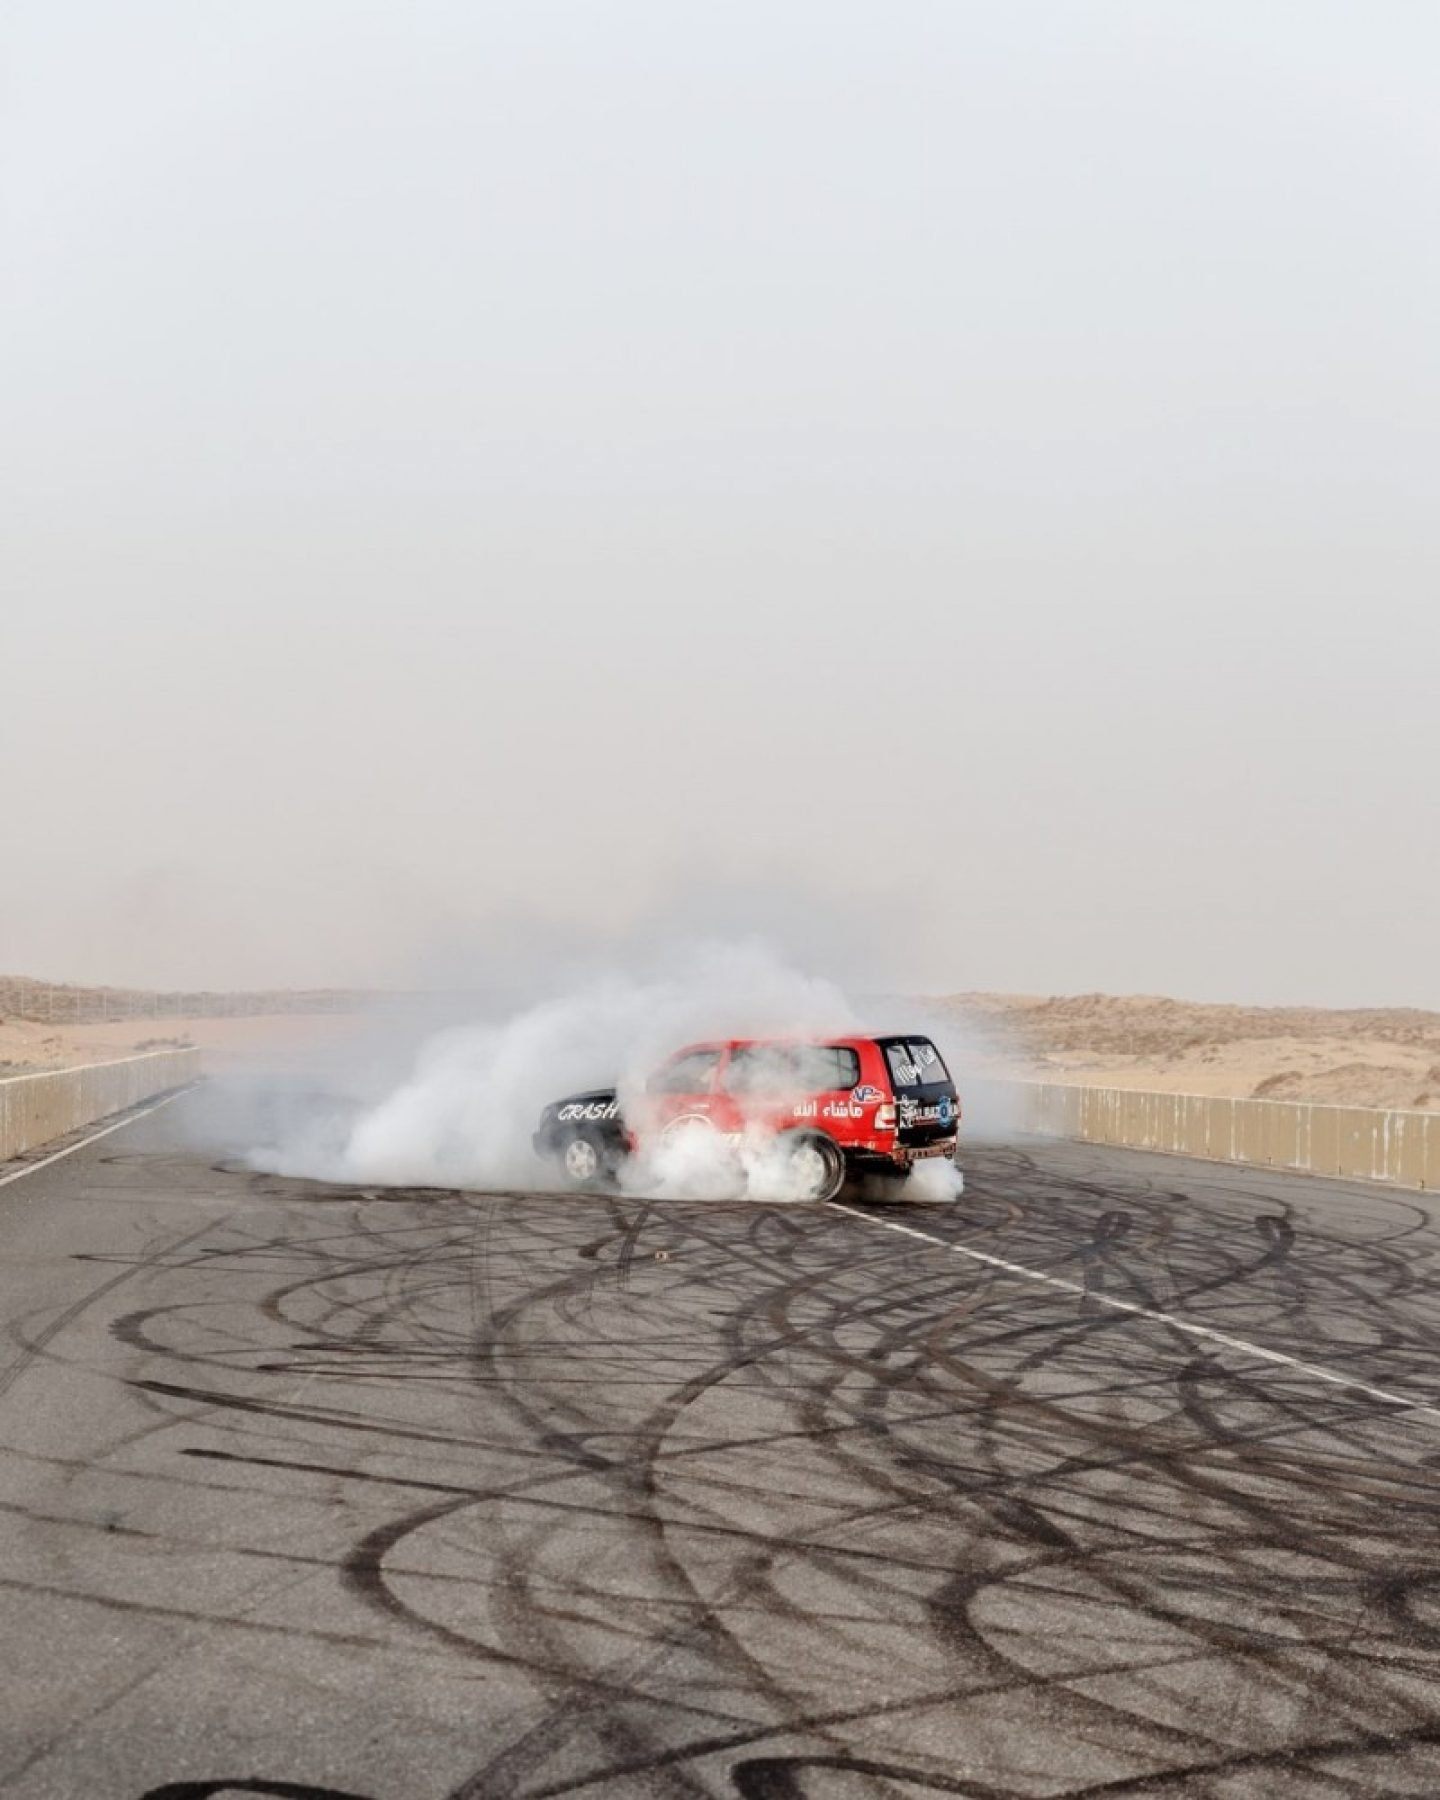 A car on the Bazooka team on a stretch of asphalt in Umm Al Quwain.